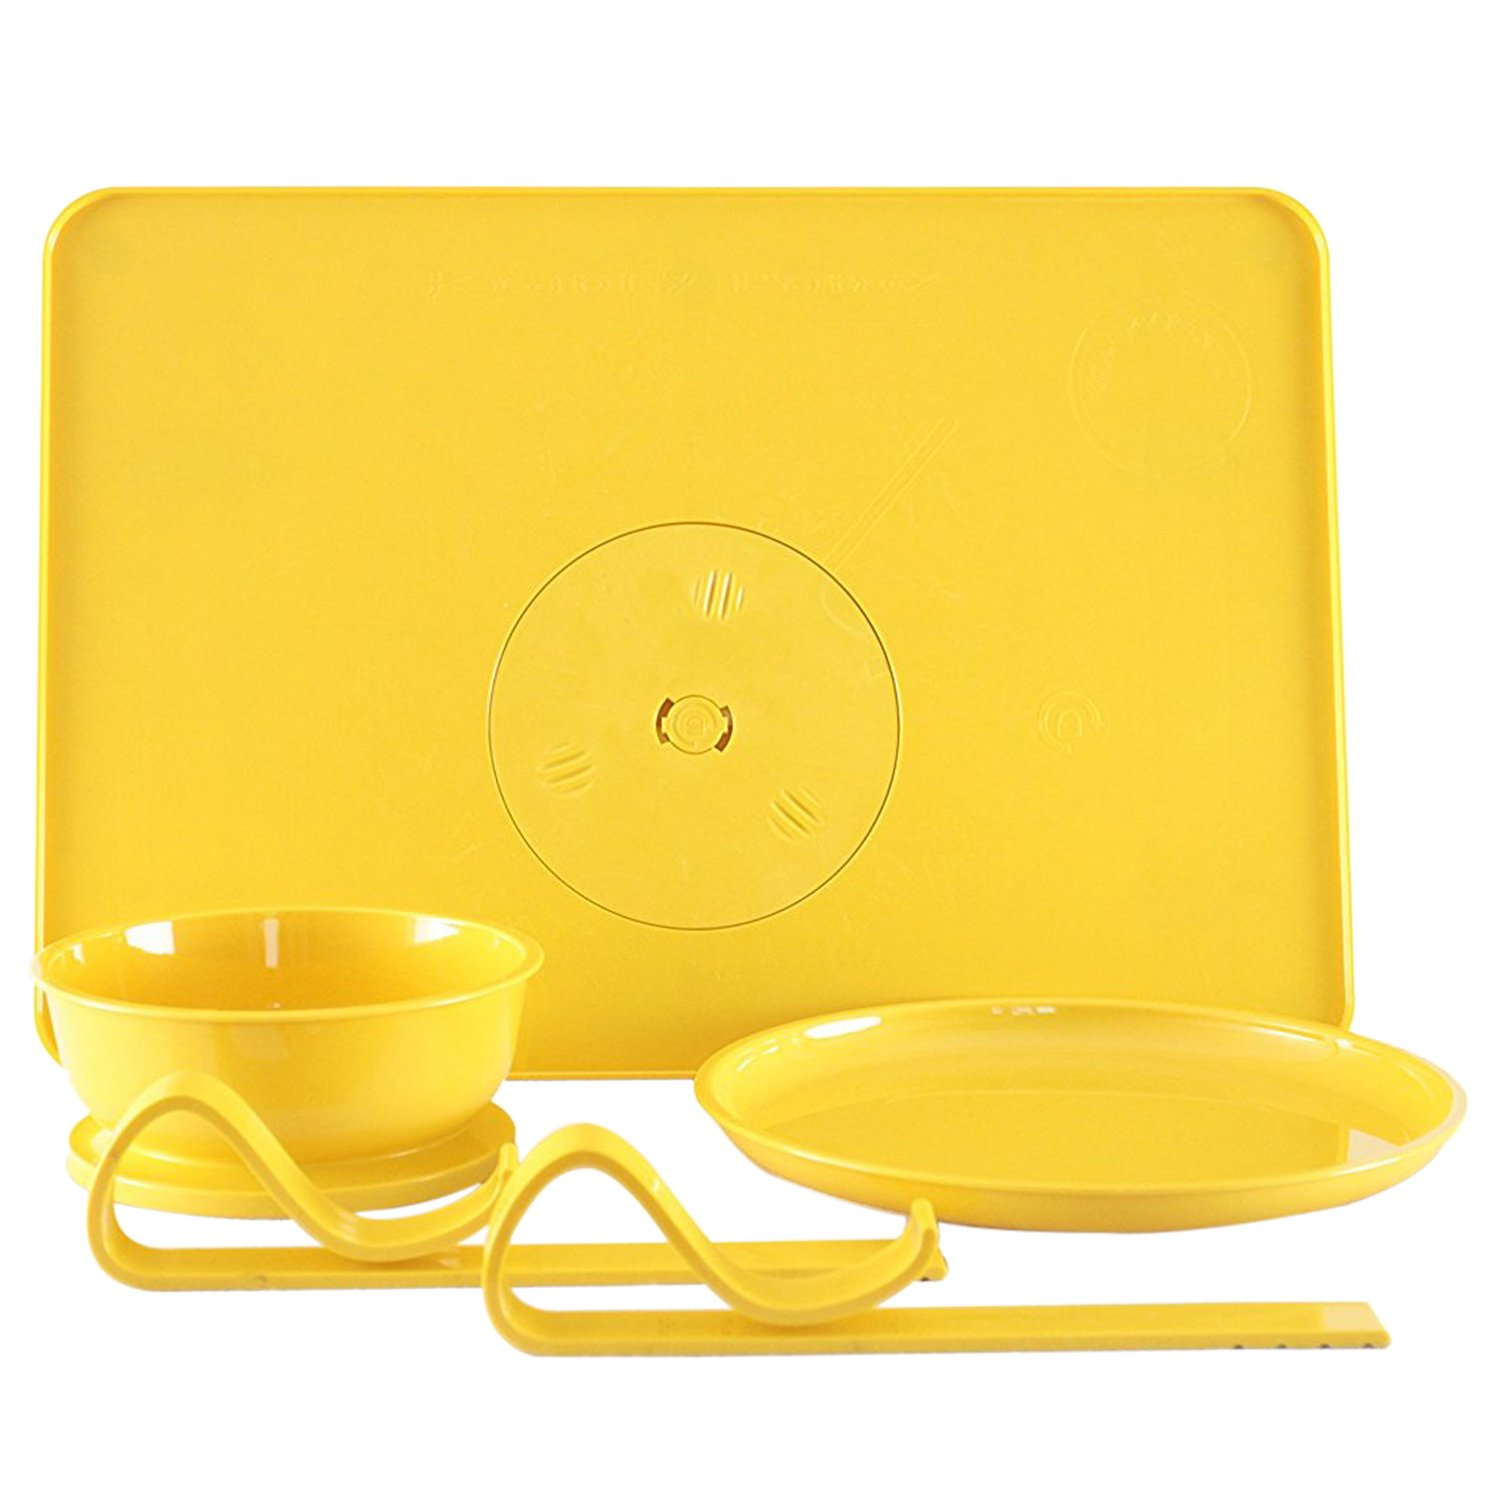 Locking Bowl & Plate With Tray Stay Put Dining Set - Tray Locks to Table - Bowl & Plate Locks to Tray, Yellow by Kranky Pantz, Inc   B01D7Q49ZU